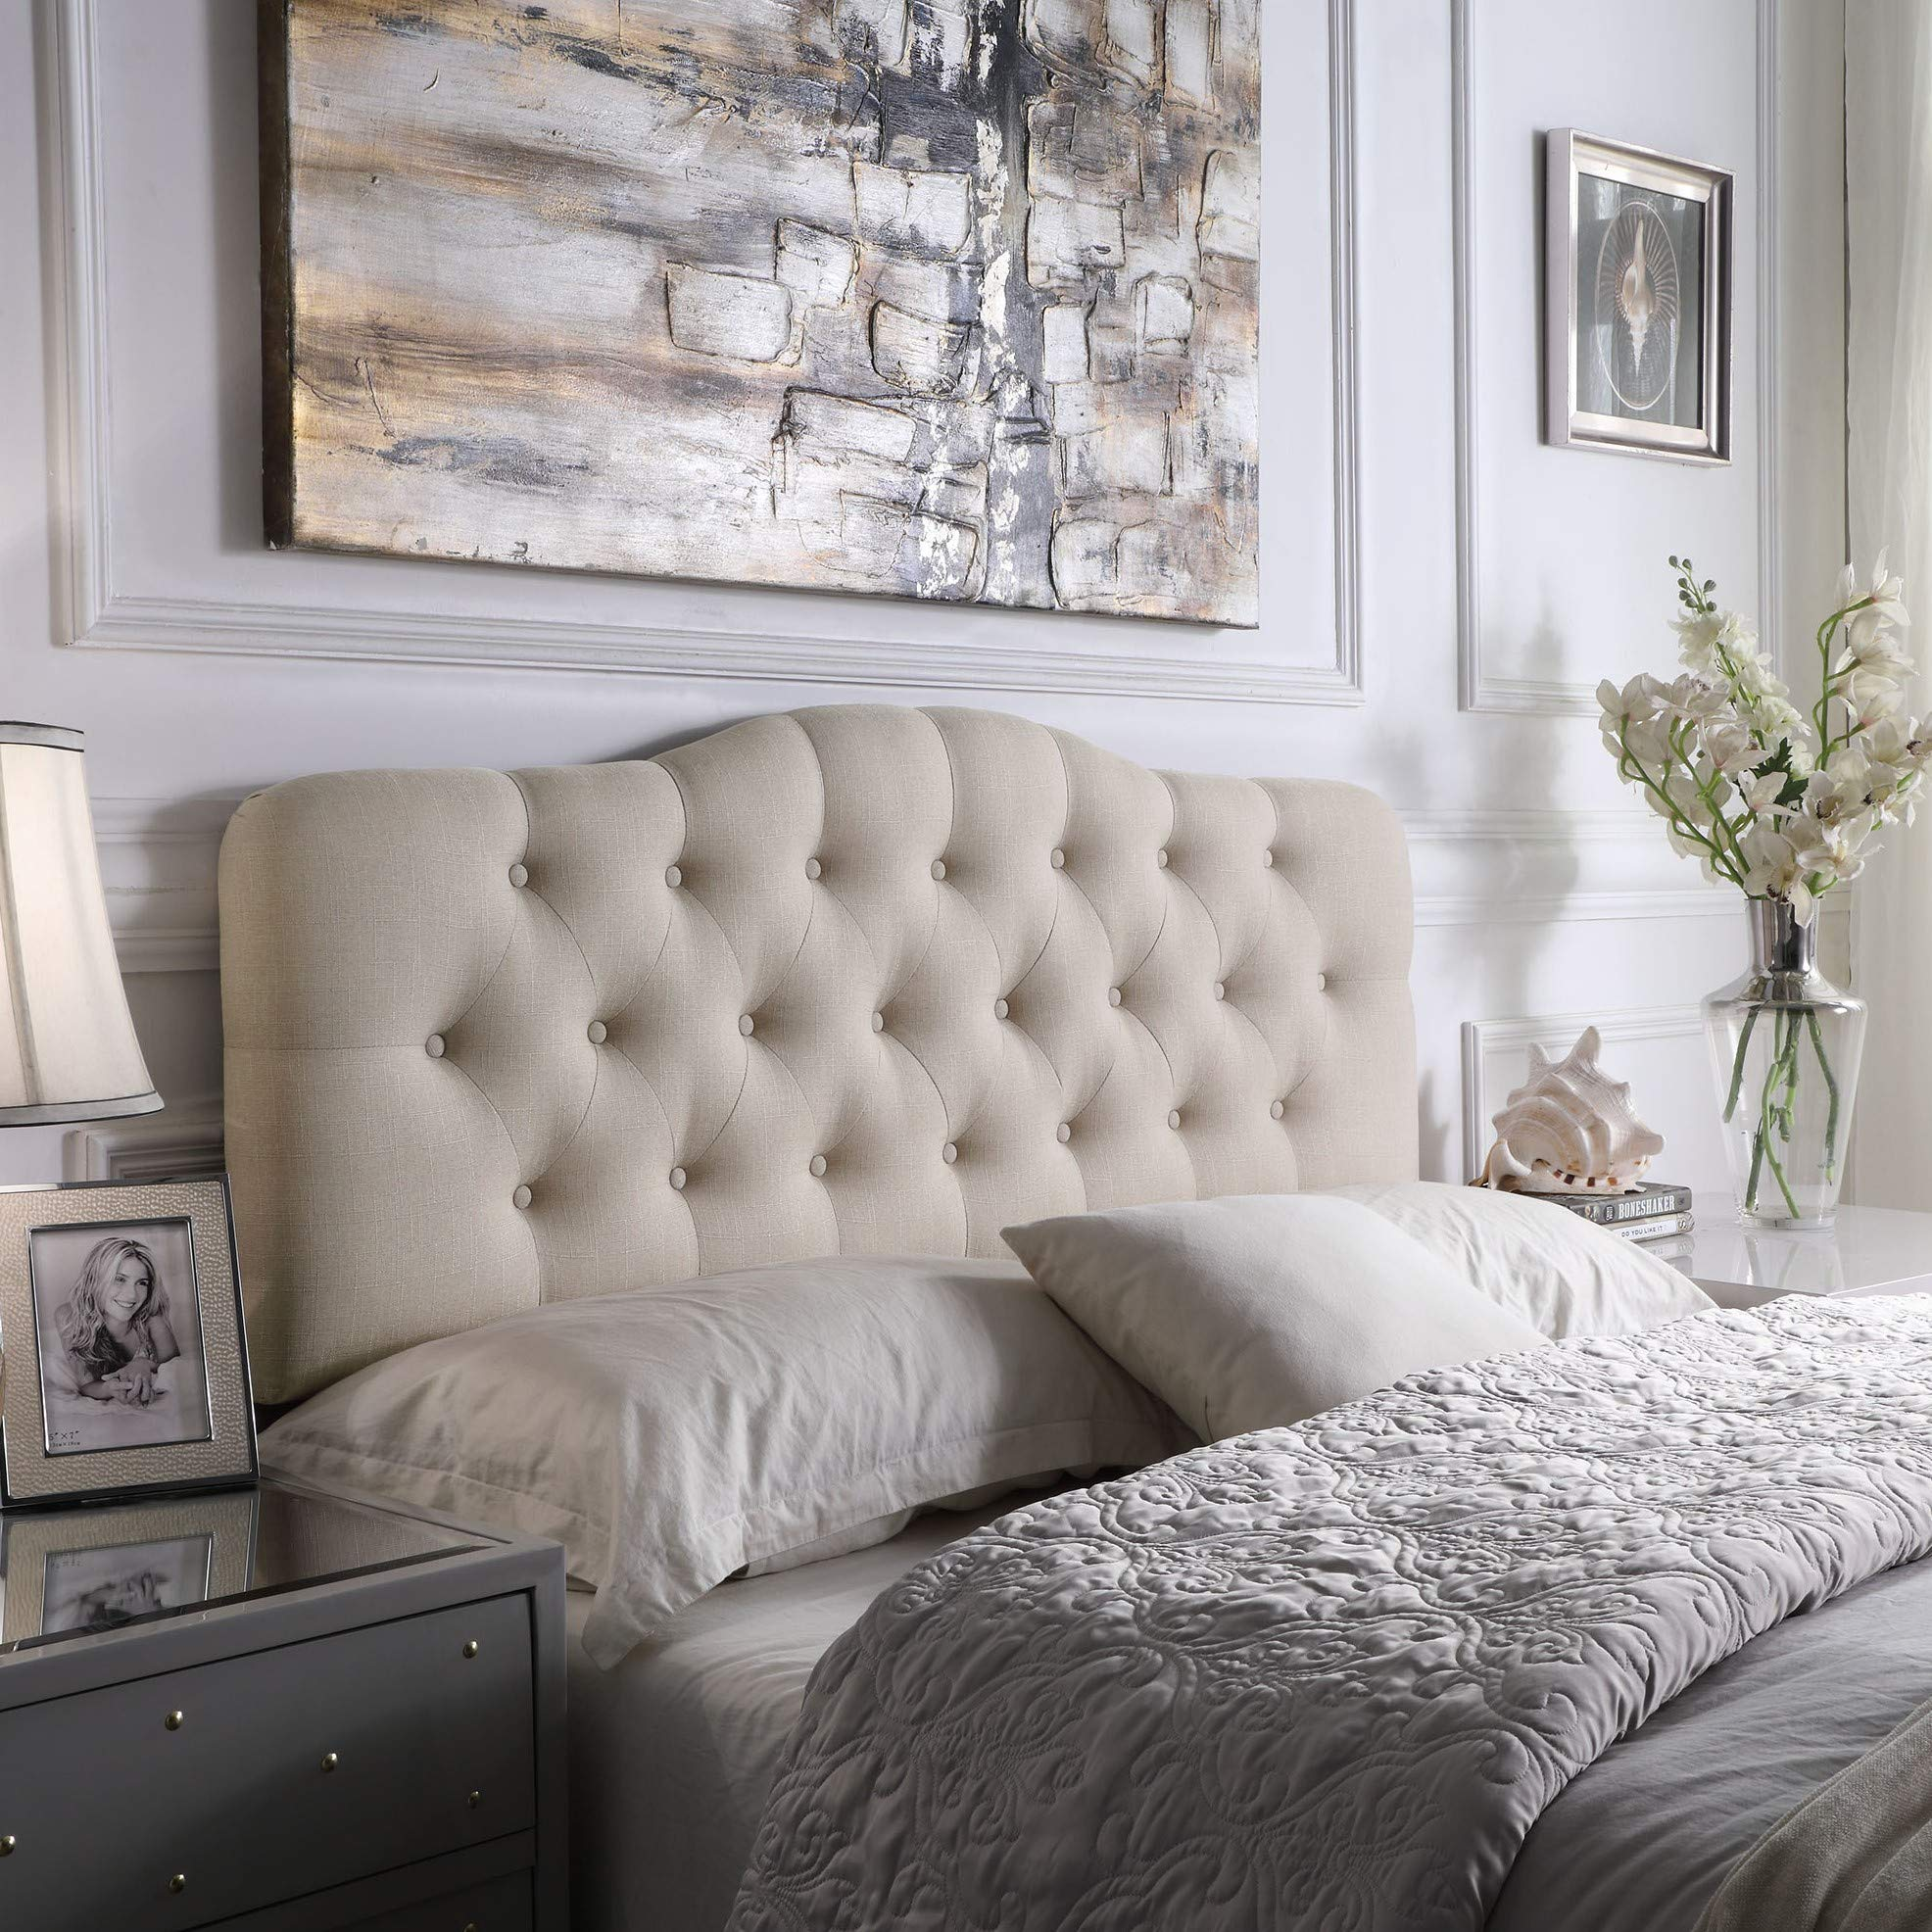 Rosevera Home Givanna Upholstered Tufted Button Linen Headboard-Queen Size in Beige